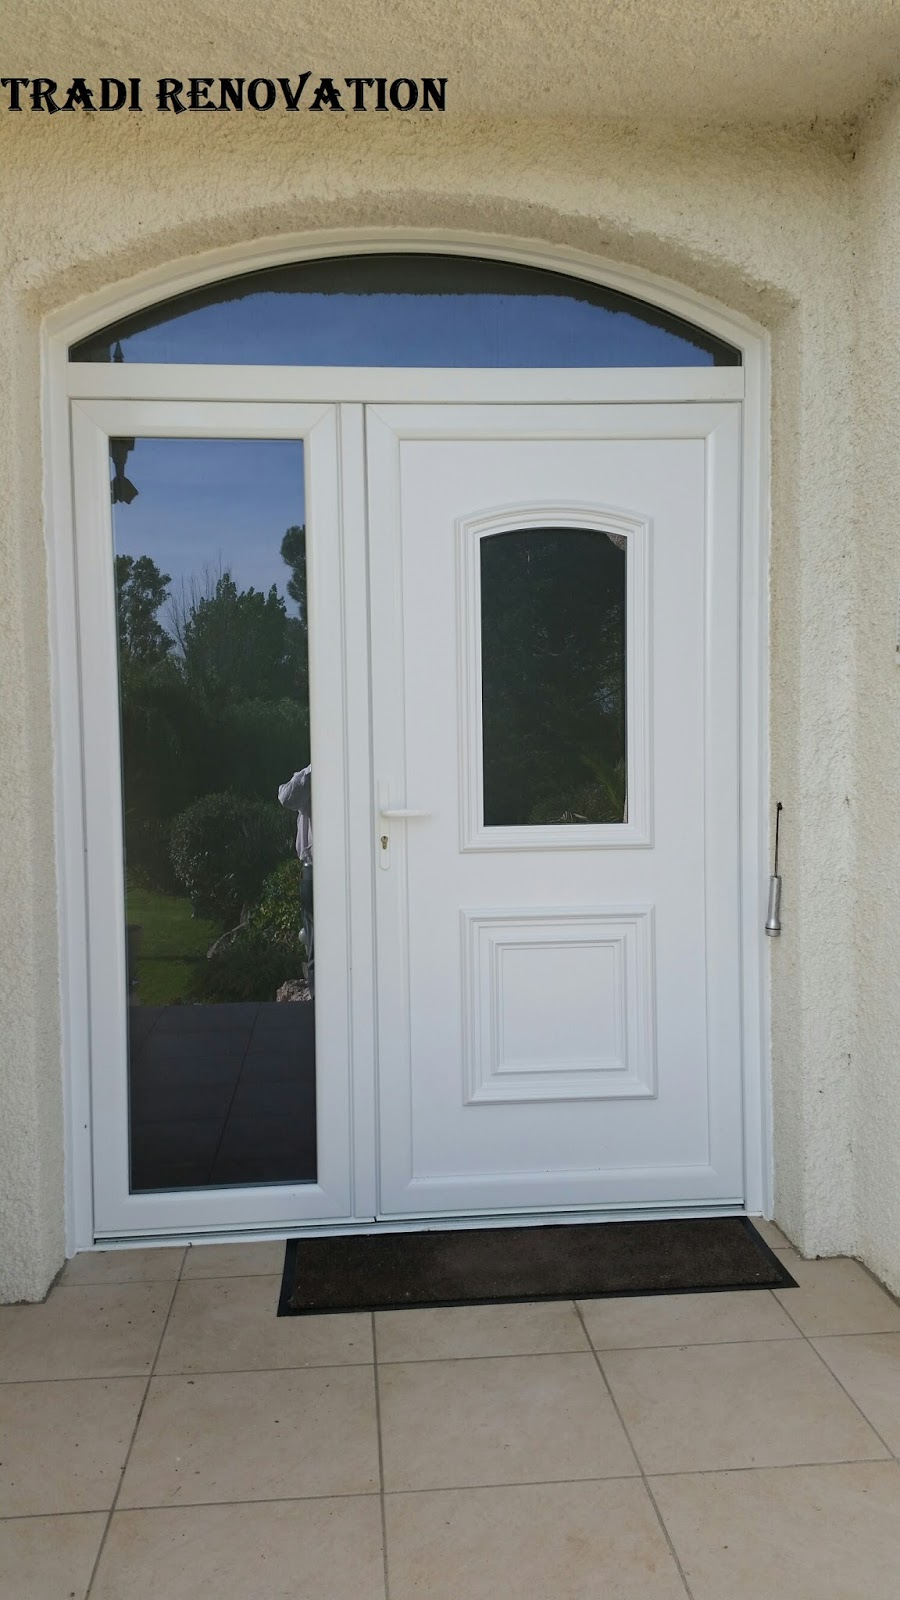 Tradi renovation porte d 39 entr e - Porte entree renovation ...